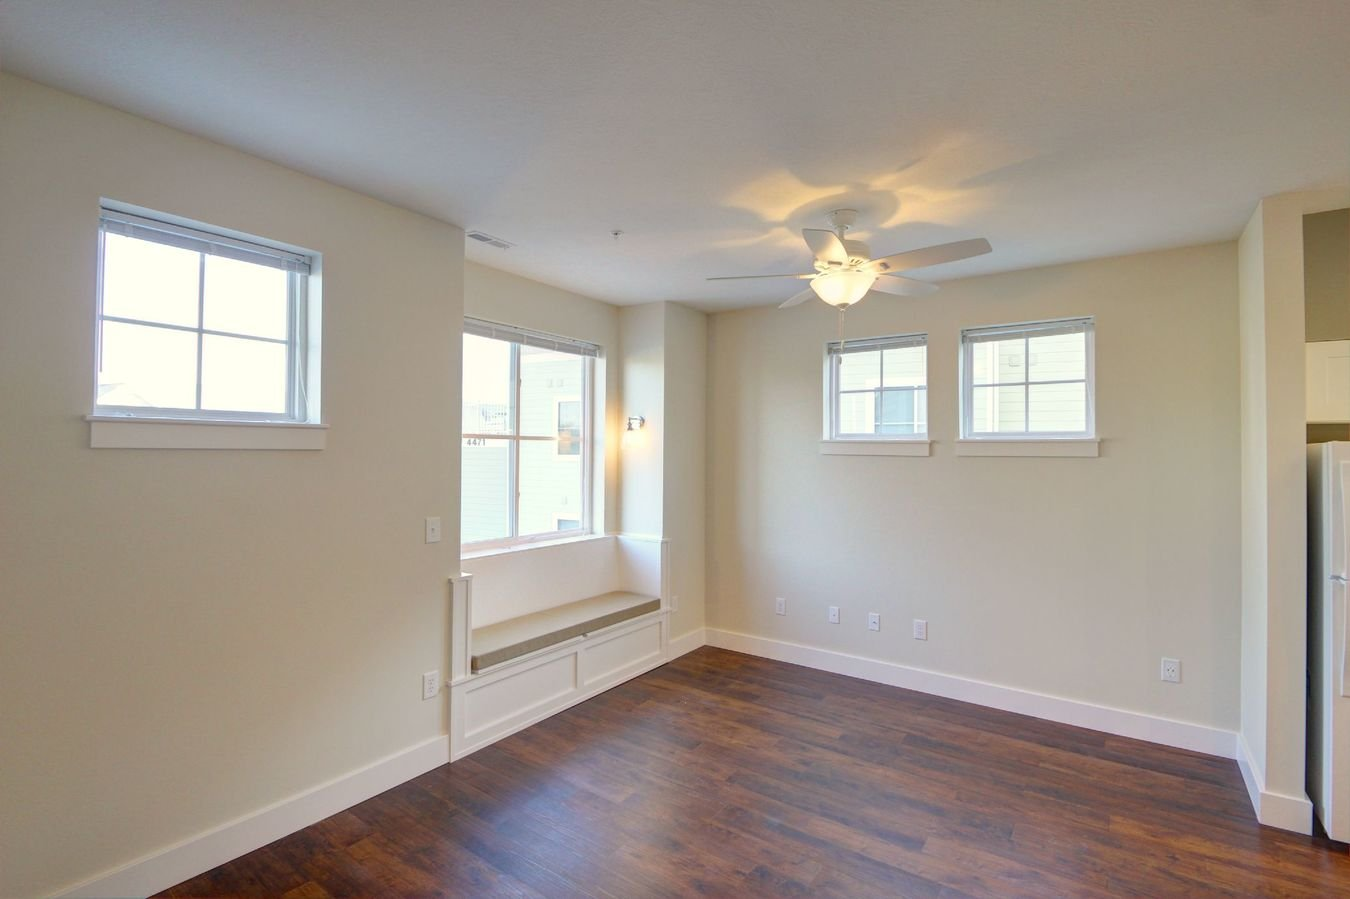 2 Bedrooms 2 Bathrooms Apartment for rent at Summerhouse At Indiana in Bloomington, IN